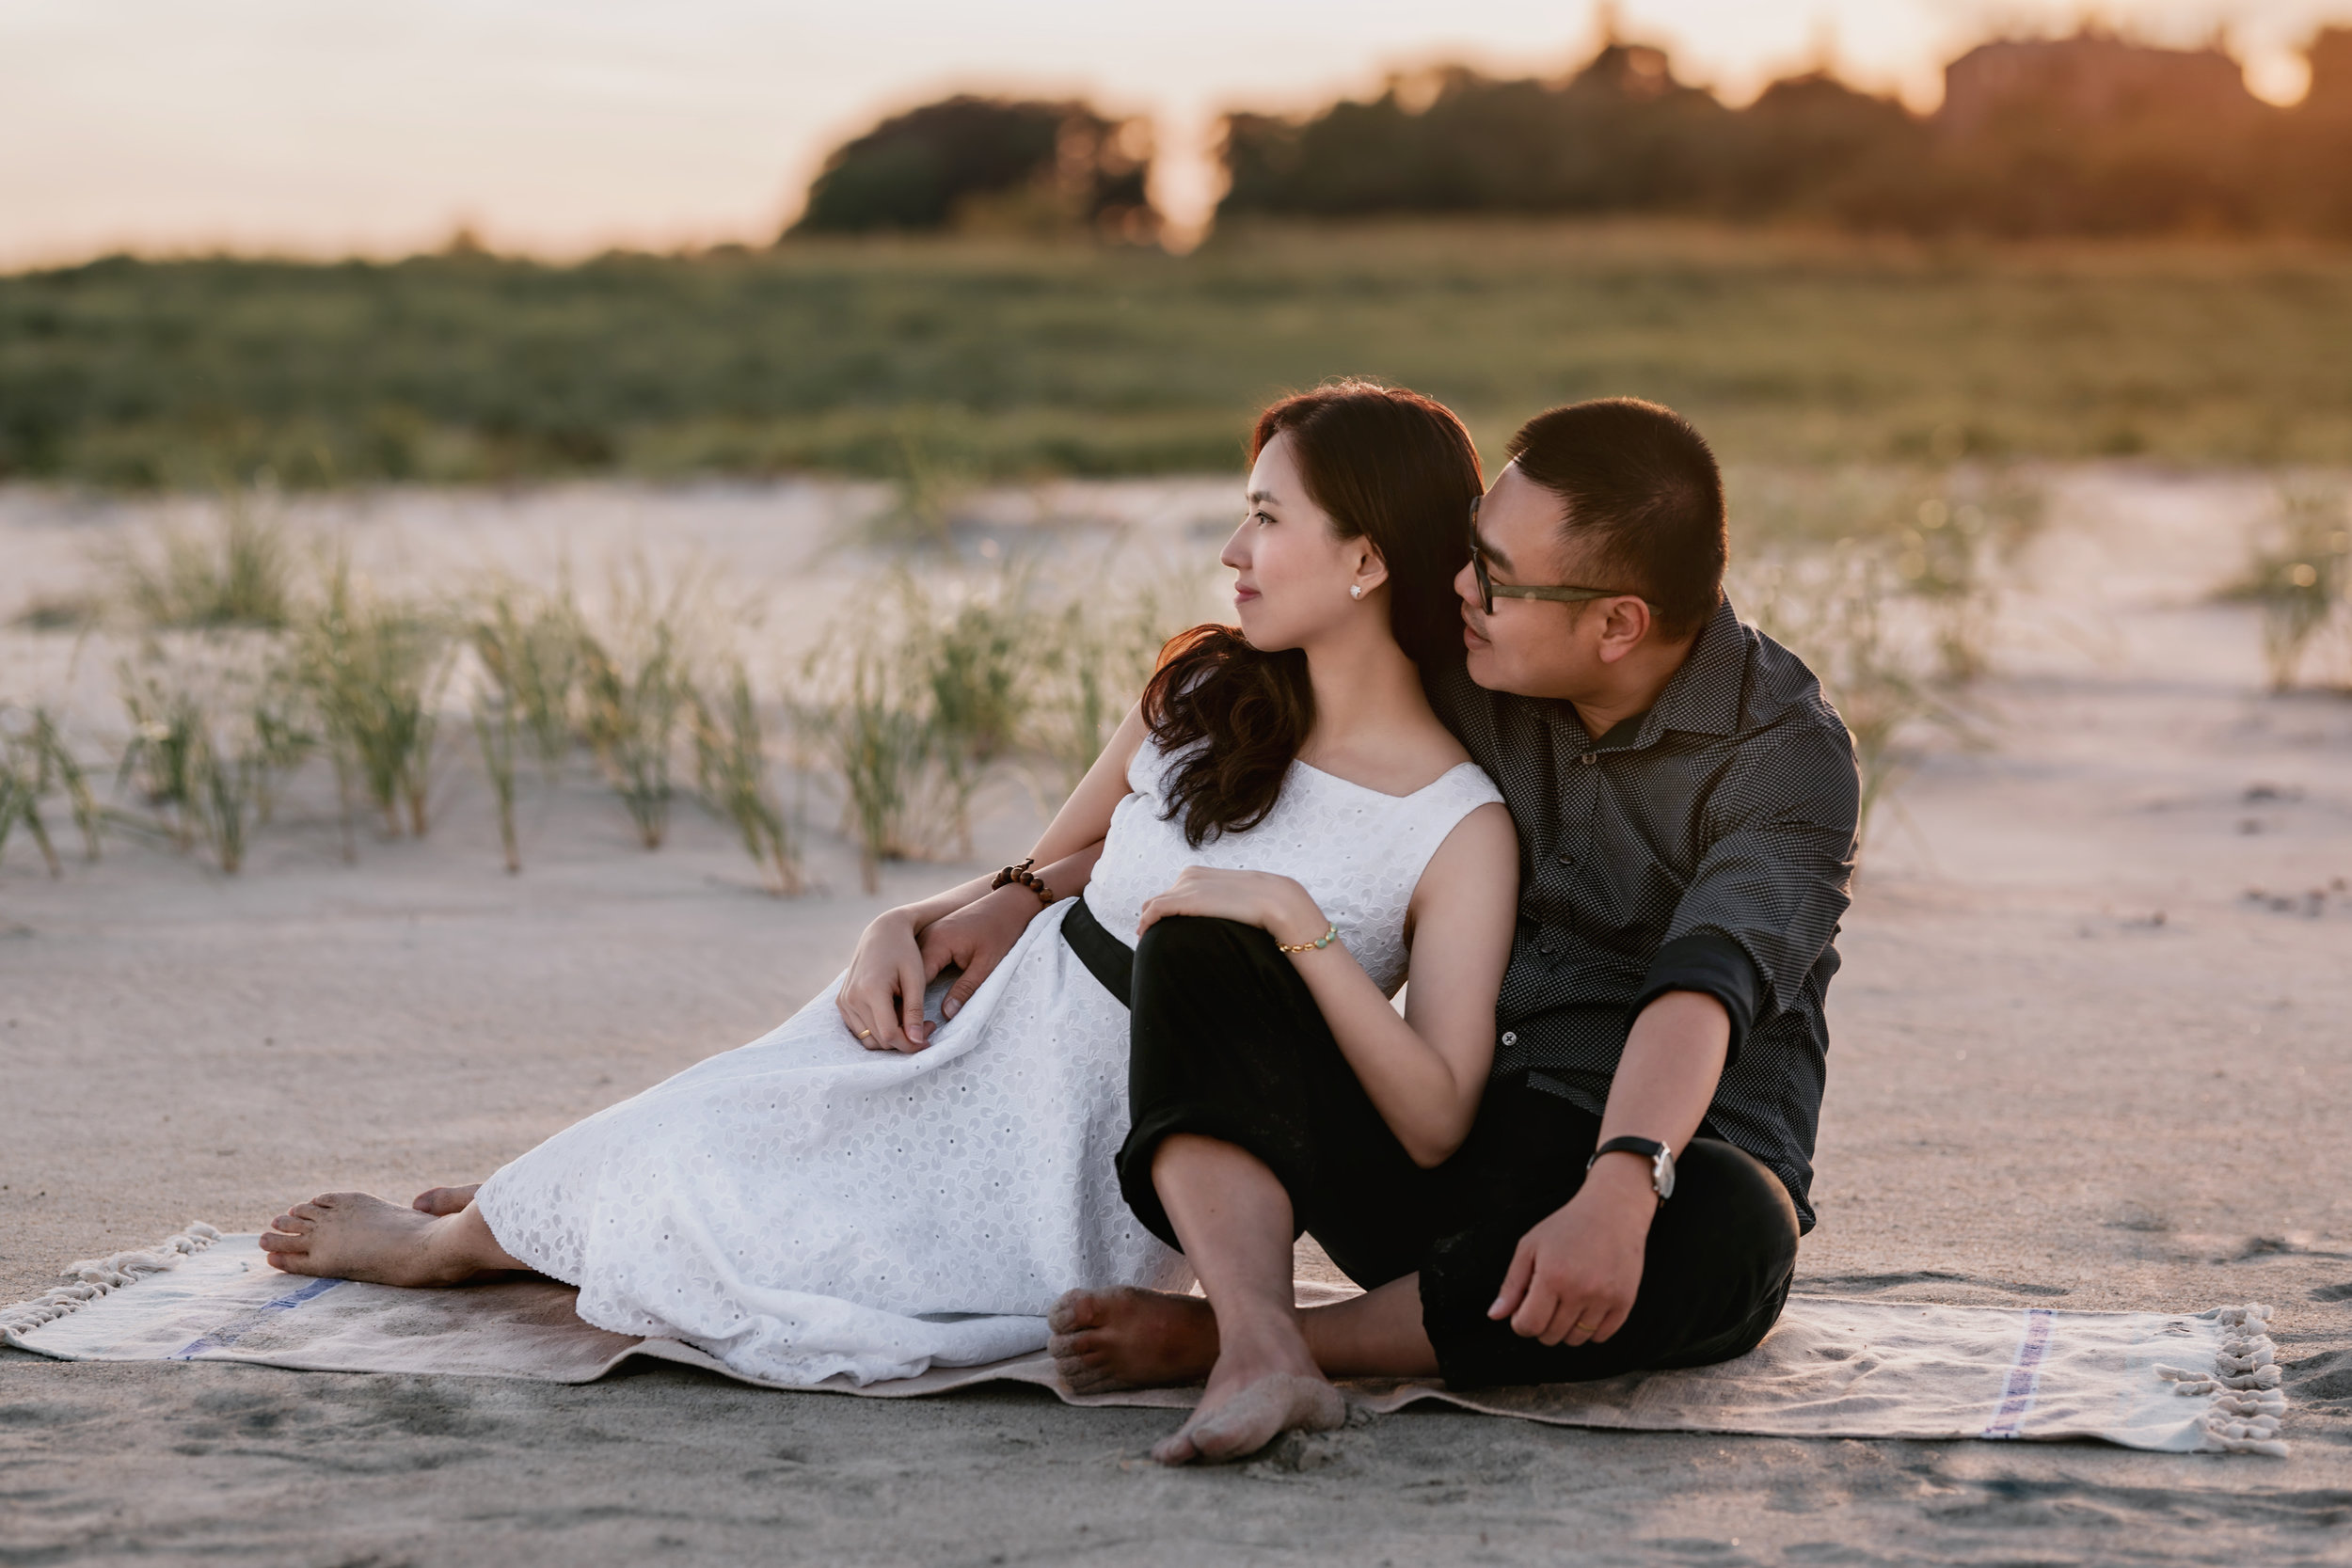 Beautiful and Natural Engagement Portrait Photos at Crane Beach in Ipswich, MA